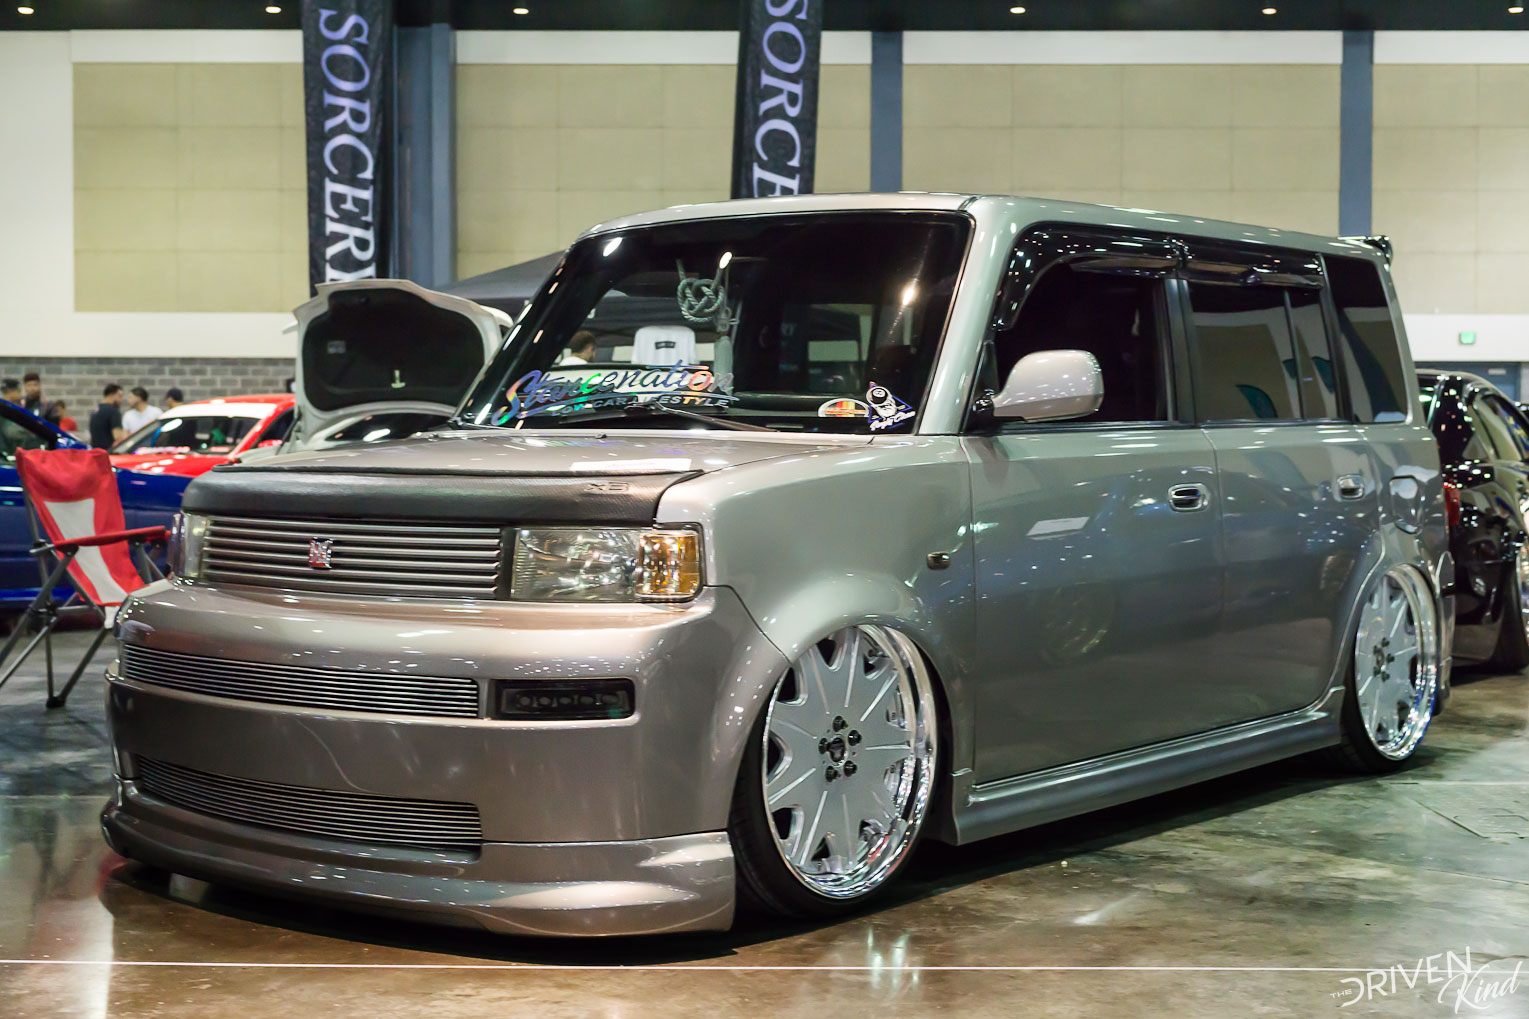 Scion XB STANCENATION FLORIDA PALM BEACH CONVENTION CENTER 2017 Pt. 2 The Driven Kind Coverage